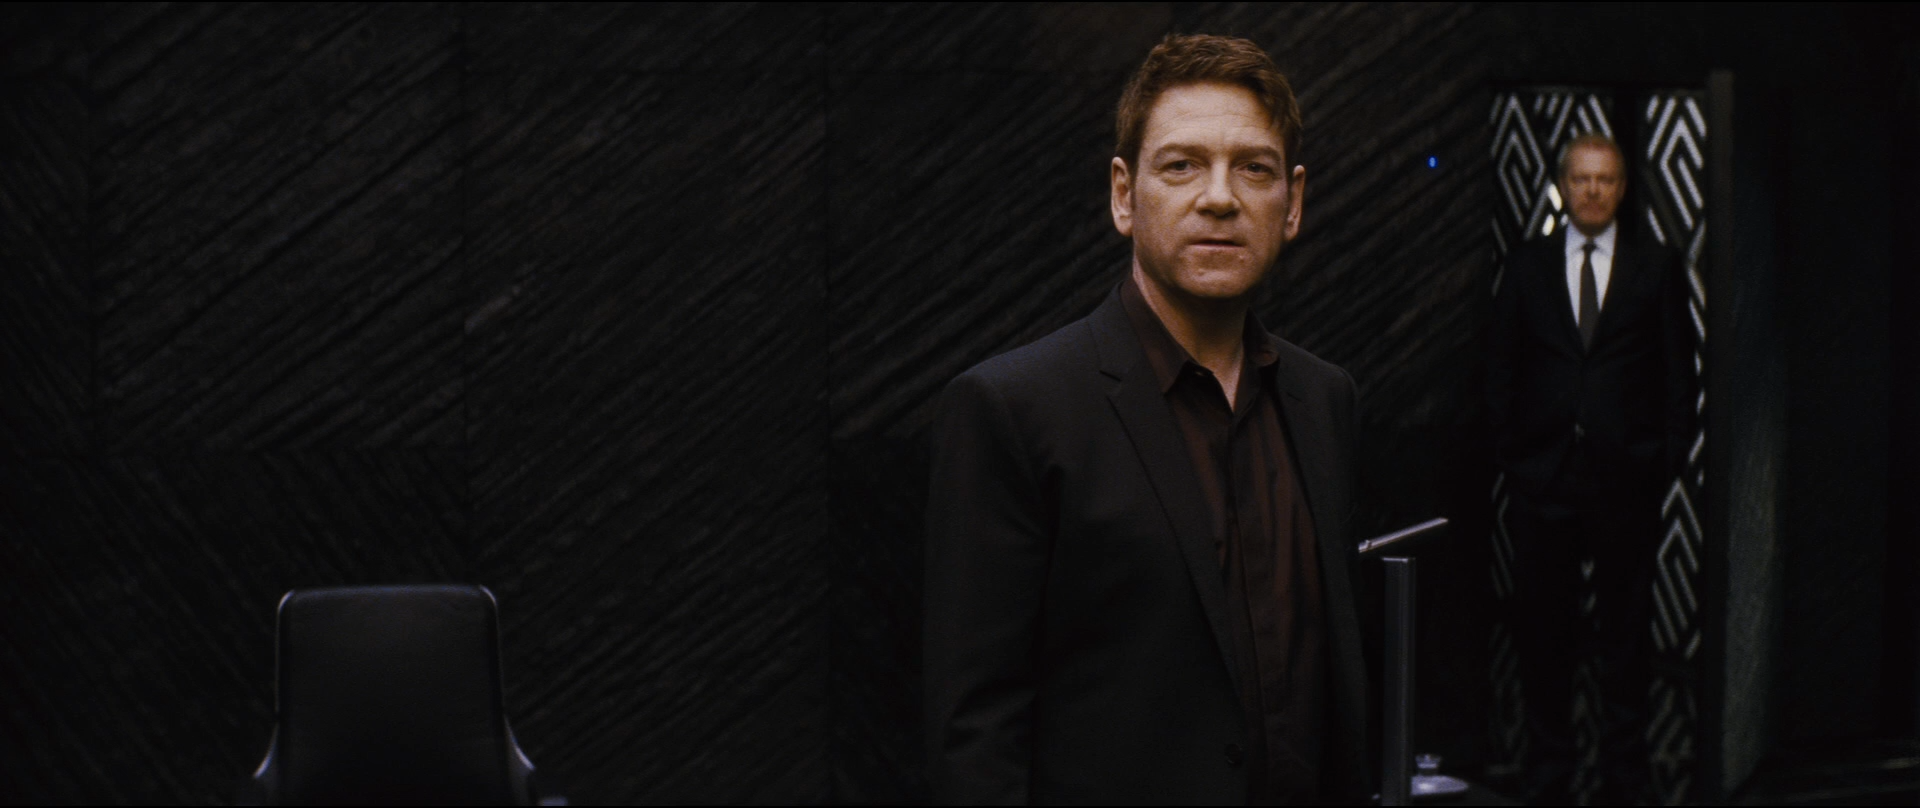 Джек Райан: Теория хаоса / Jack Ryan: Shadow Recruit (2014) BDRip (1080p) | Лицензия